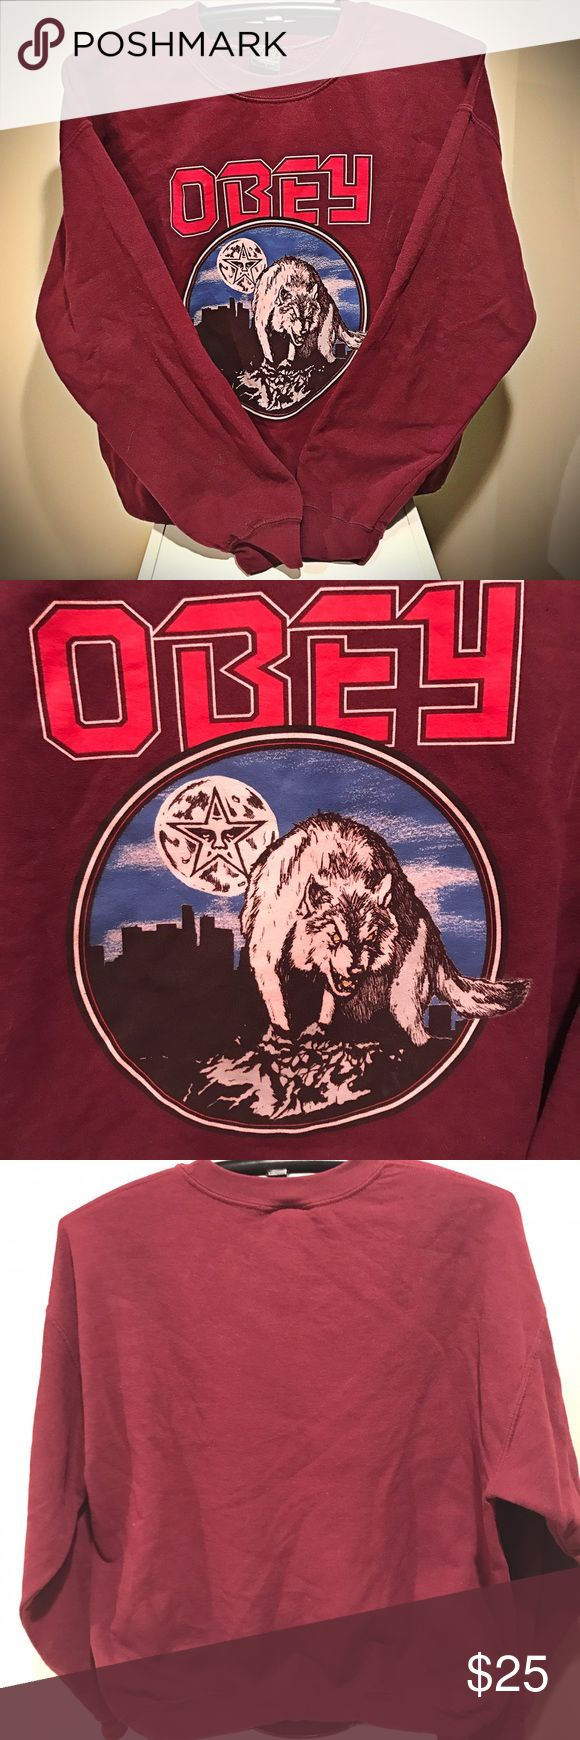 OBEY Burgundy Wolf Crewneck Sweatshirt Badass wolf print ladies crewneck by OBEY! Never worn! Excellent condition! No Trades! Obey Tops Sweatshirts & Hoodies